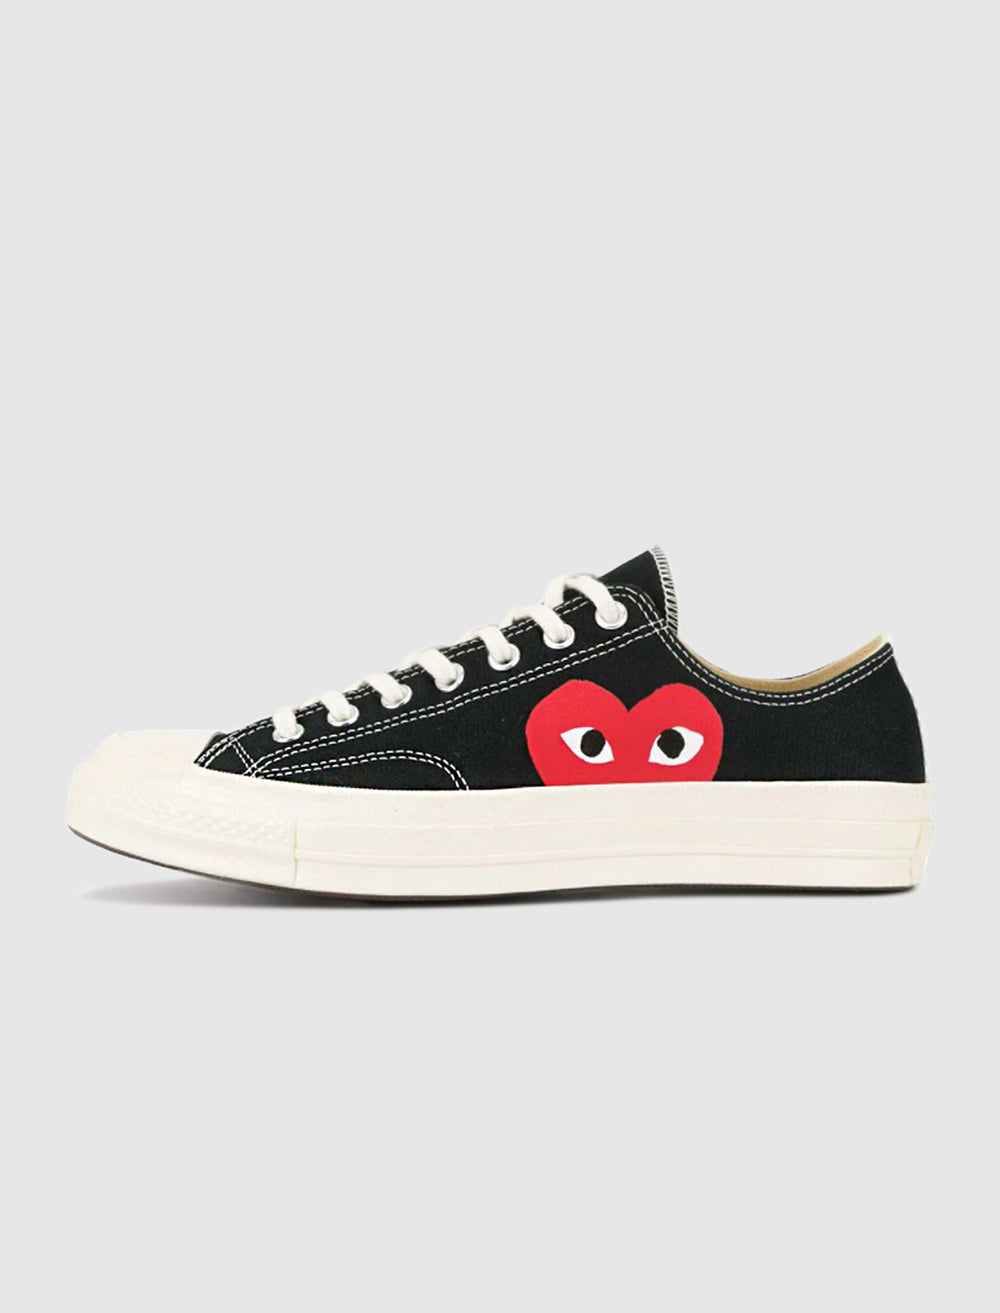 cdg-x-converse-low-1